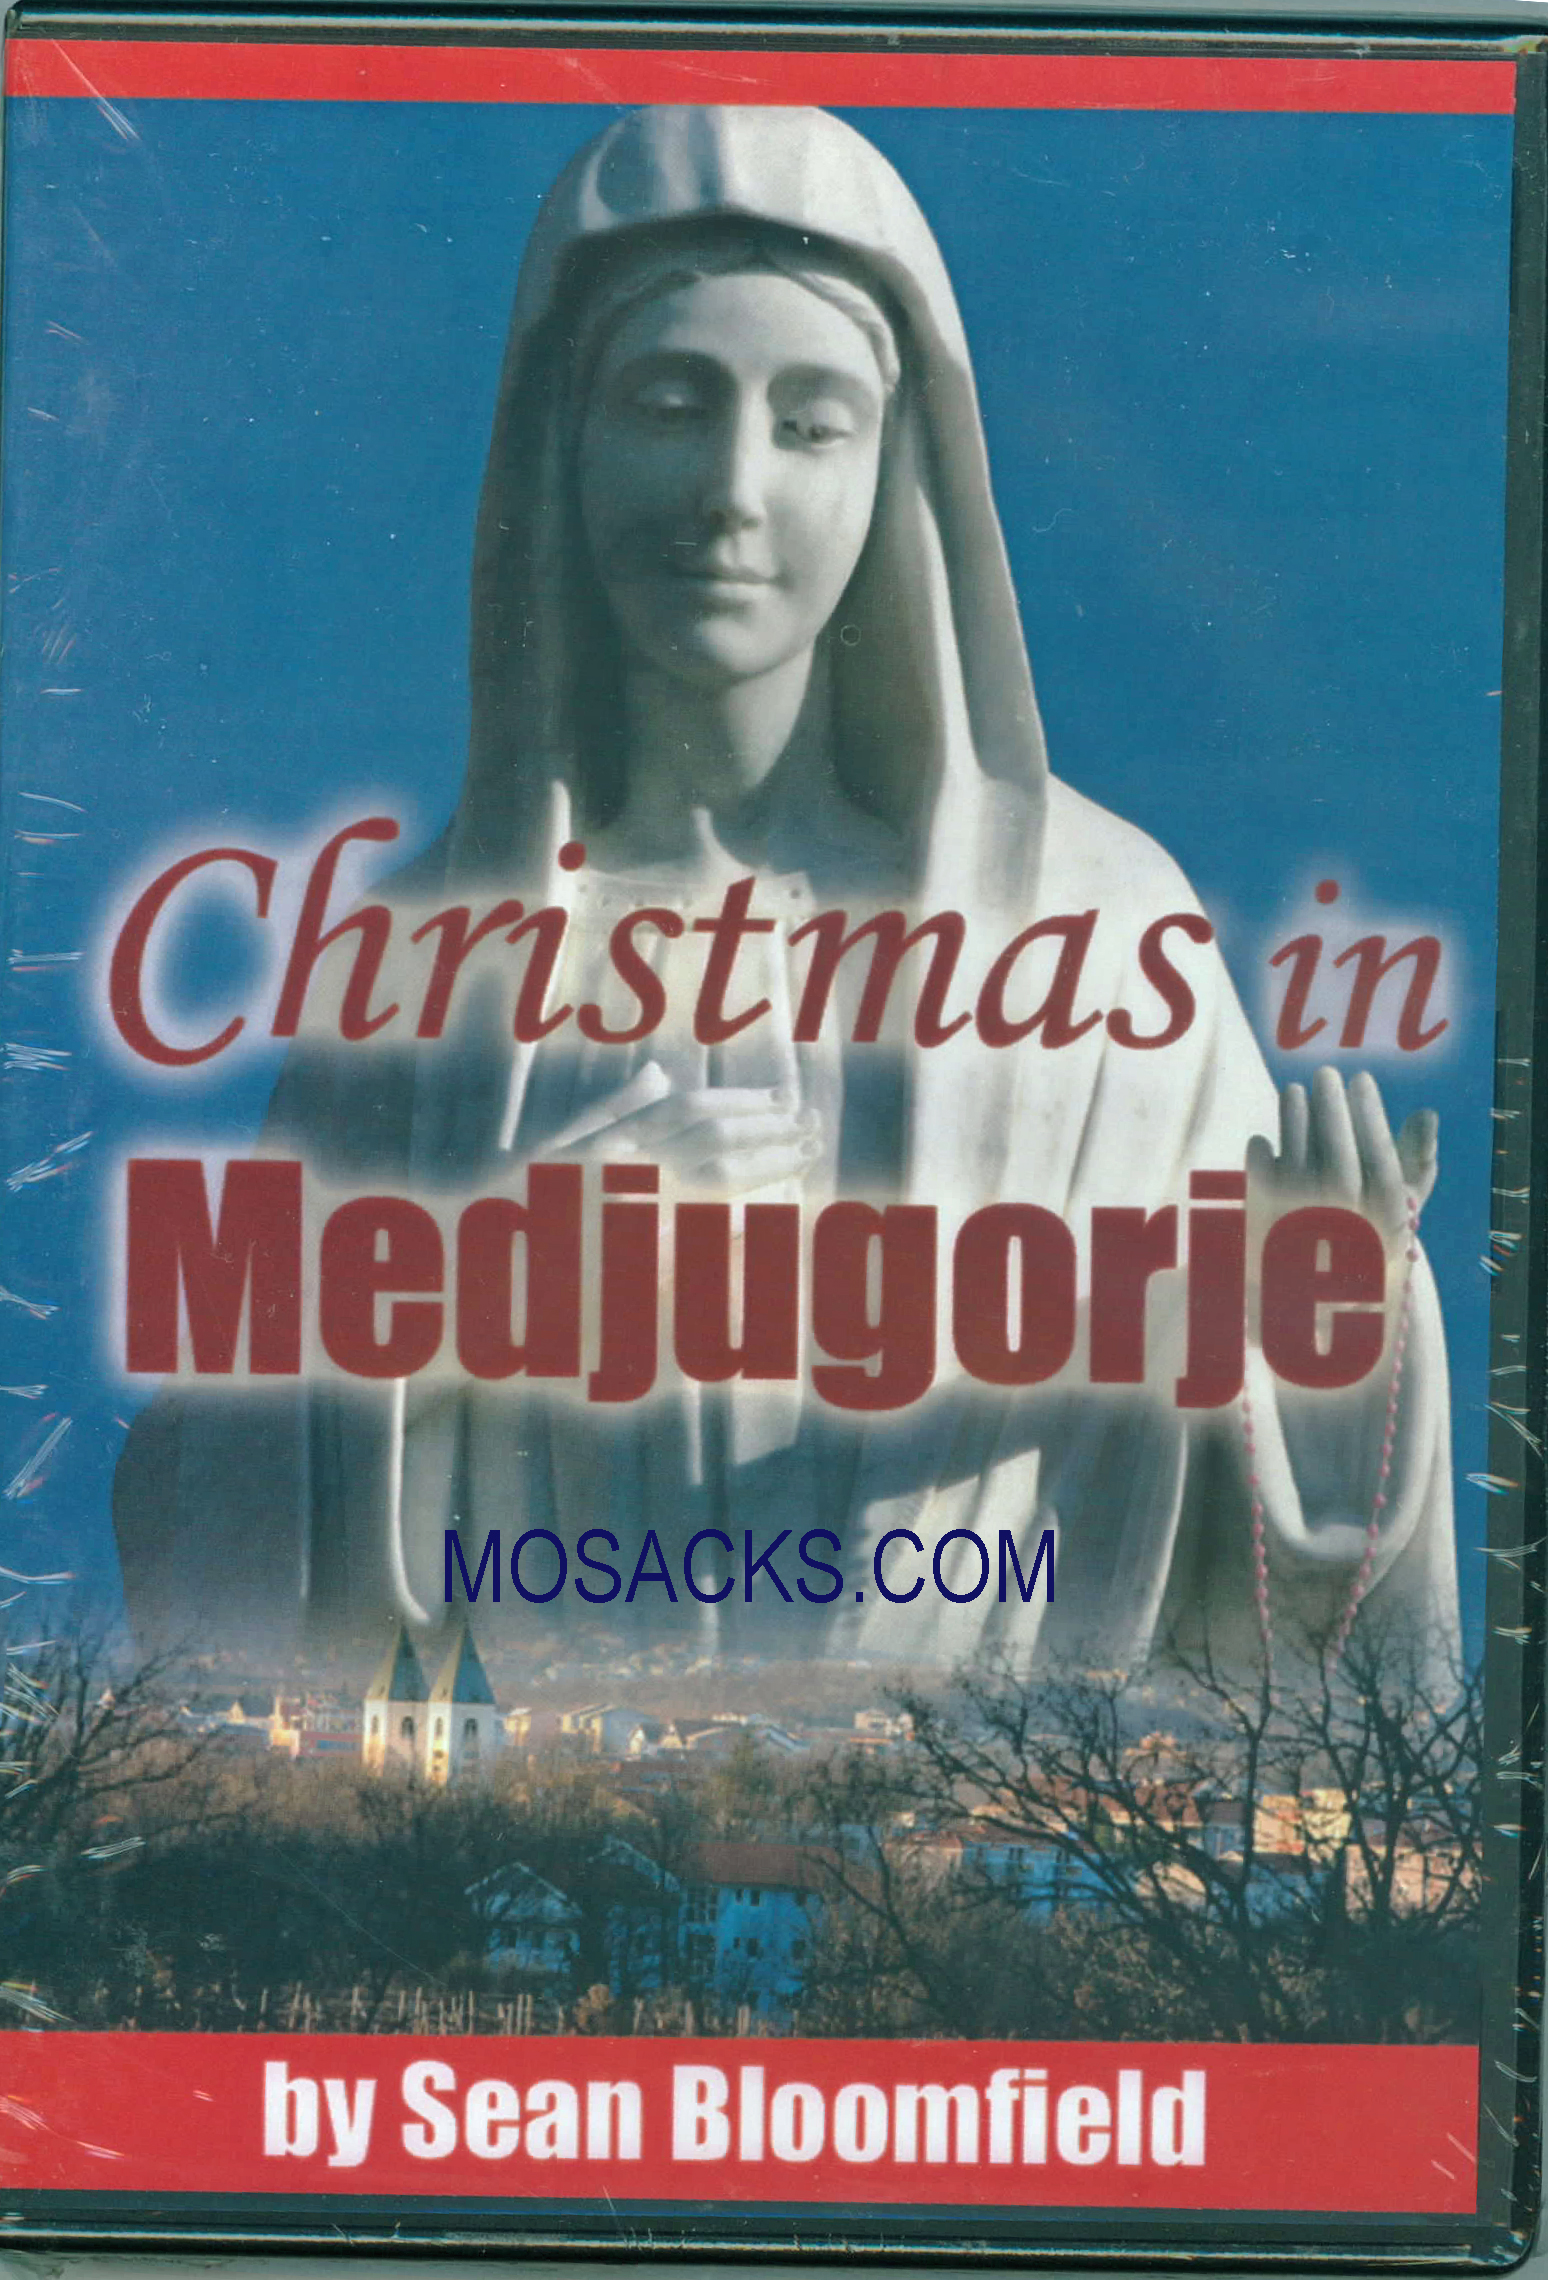 DVD-Christmas in Medjugorje by Sean Bloomfield 463-QOPP5